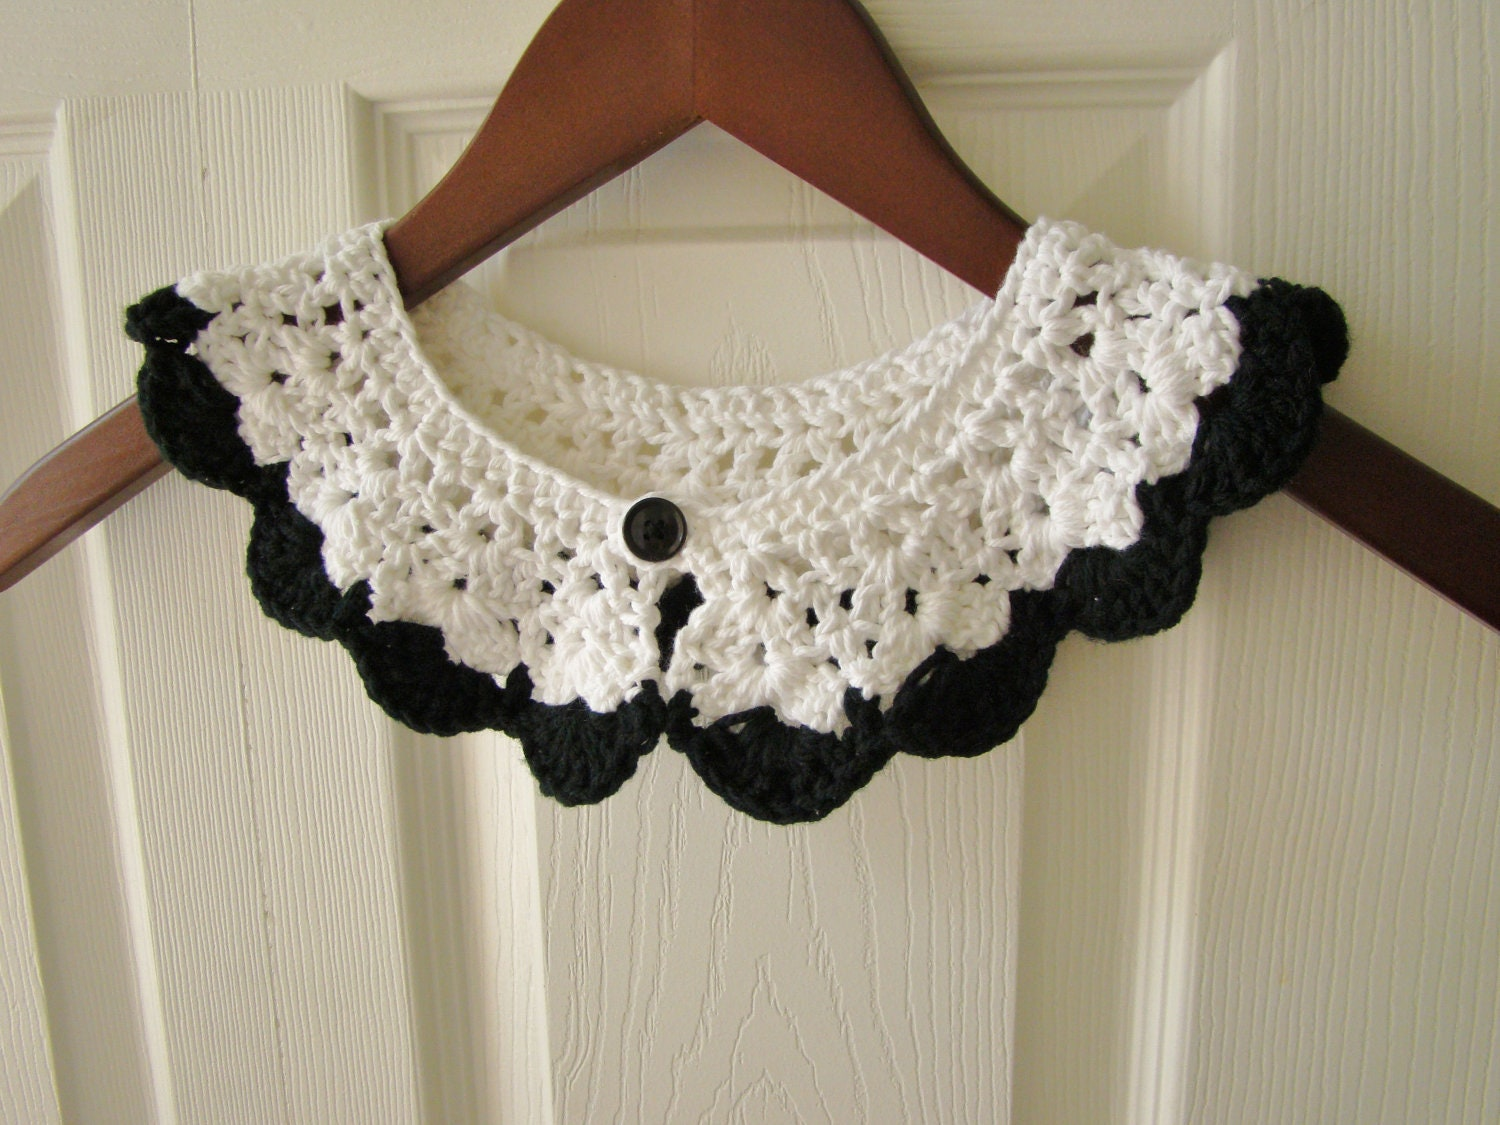 Crochet peter pan collar peter pan collar lace collar zoom bankloansurffo Image collections